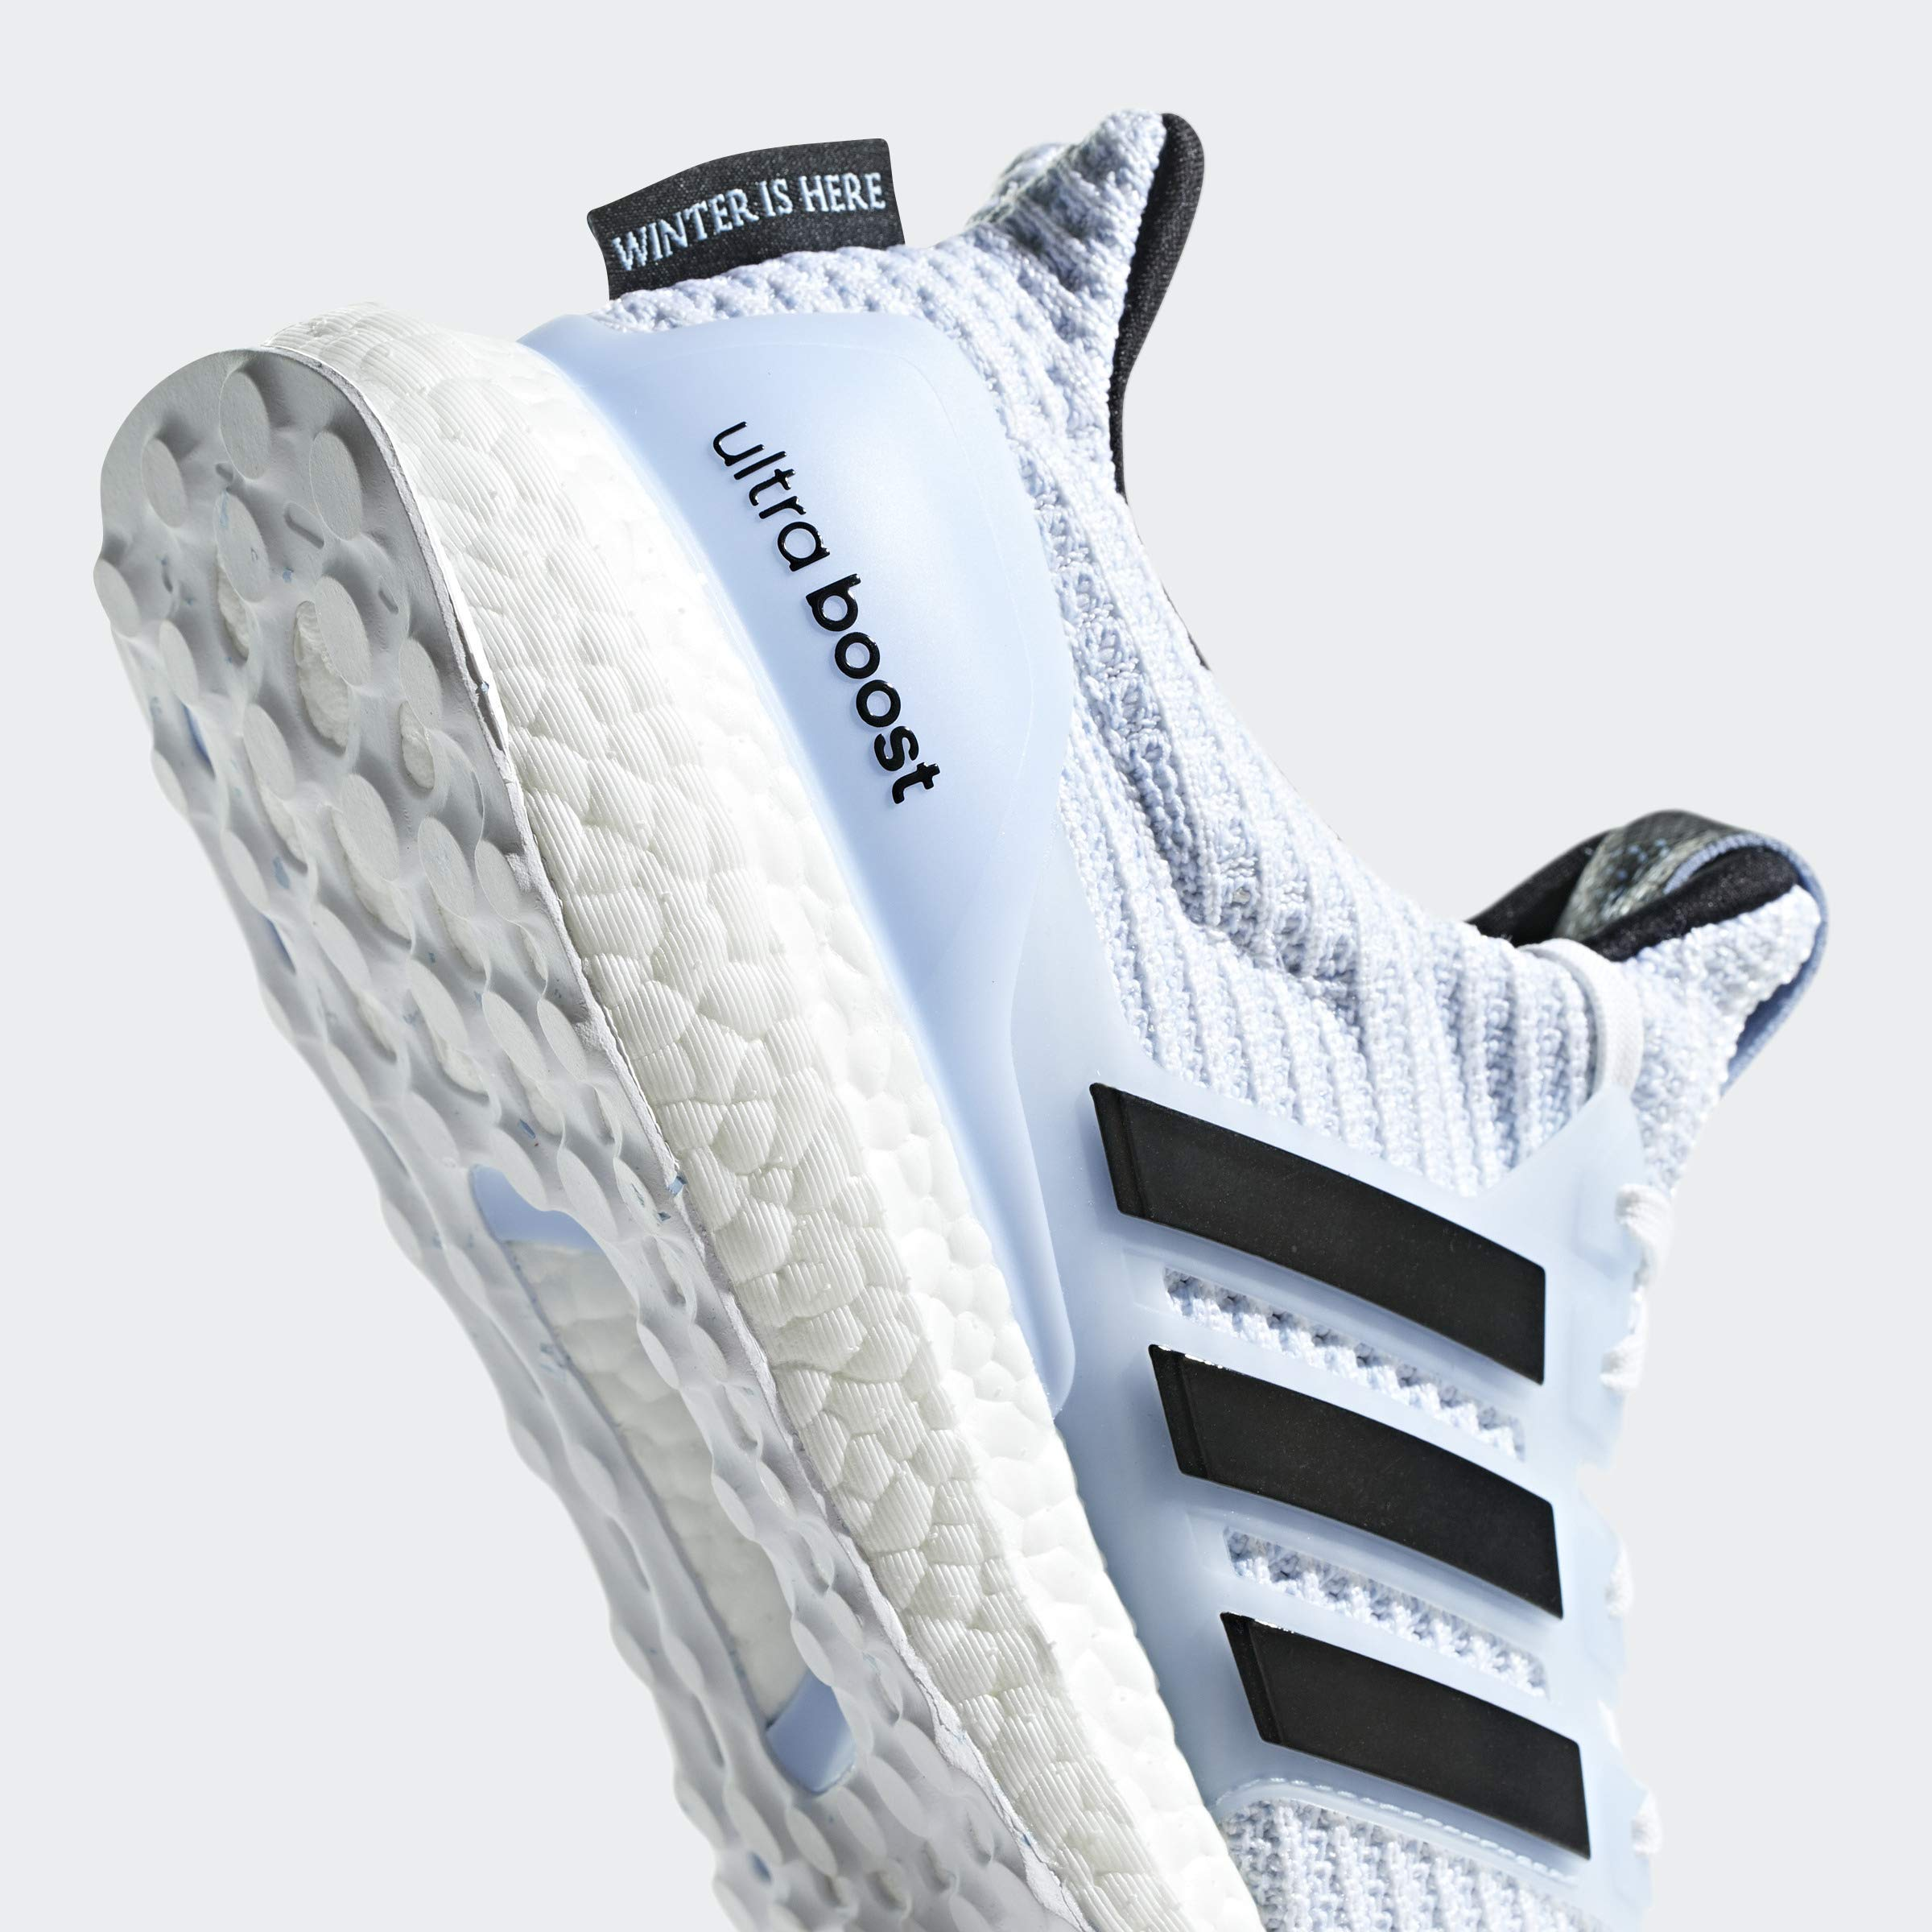 adidas x Game of Thrones Men's Ultraboost Running Shoes, White Walker, 8.5 M US by adidas (Image #2)